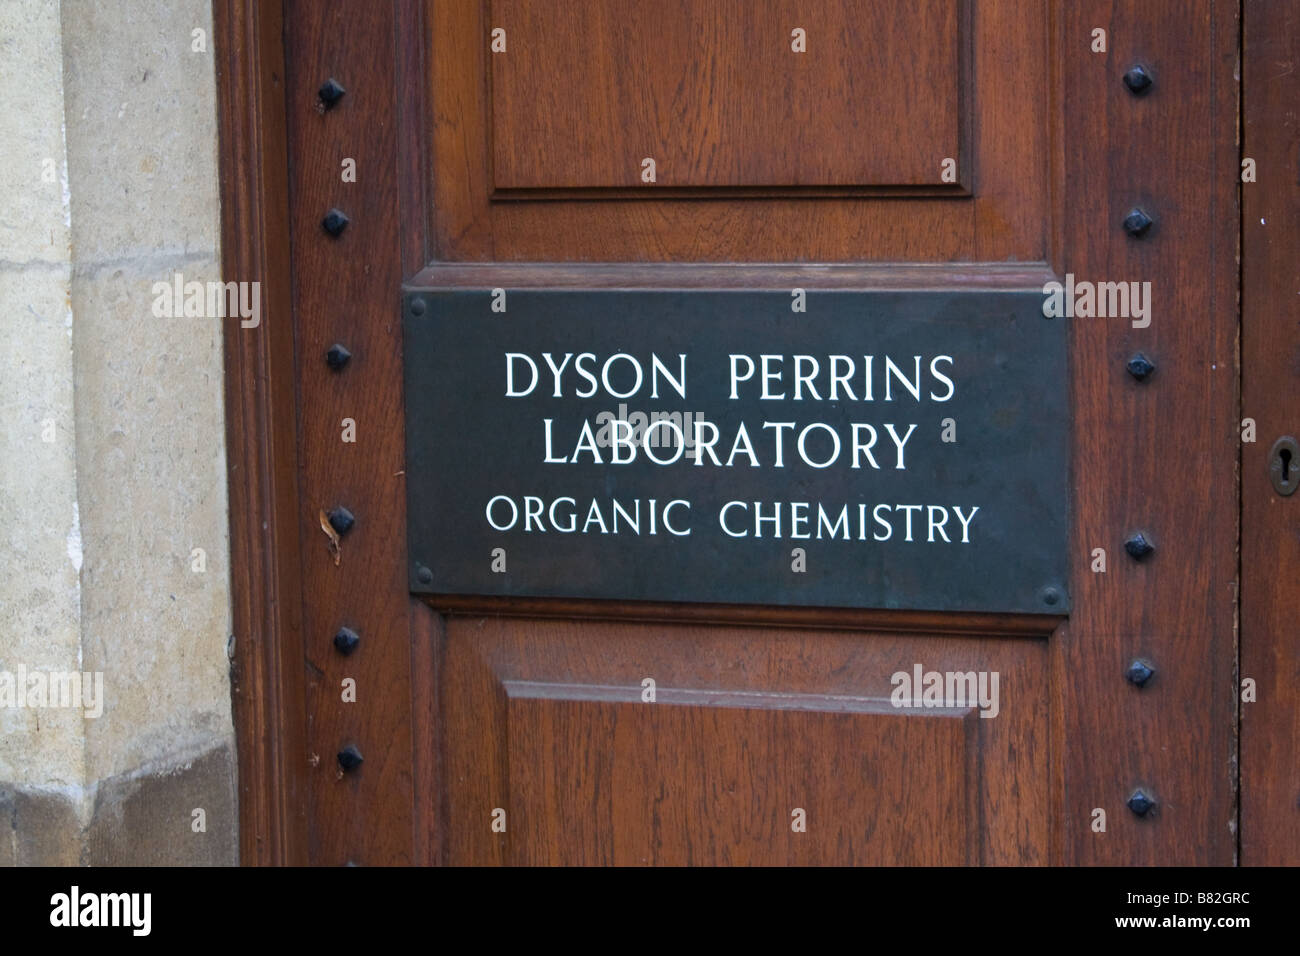 Shot taken outside the Dyson Perrins Laboratory of Organic Chemistry, part of Oxford University, Oxford Stock Photo